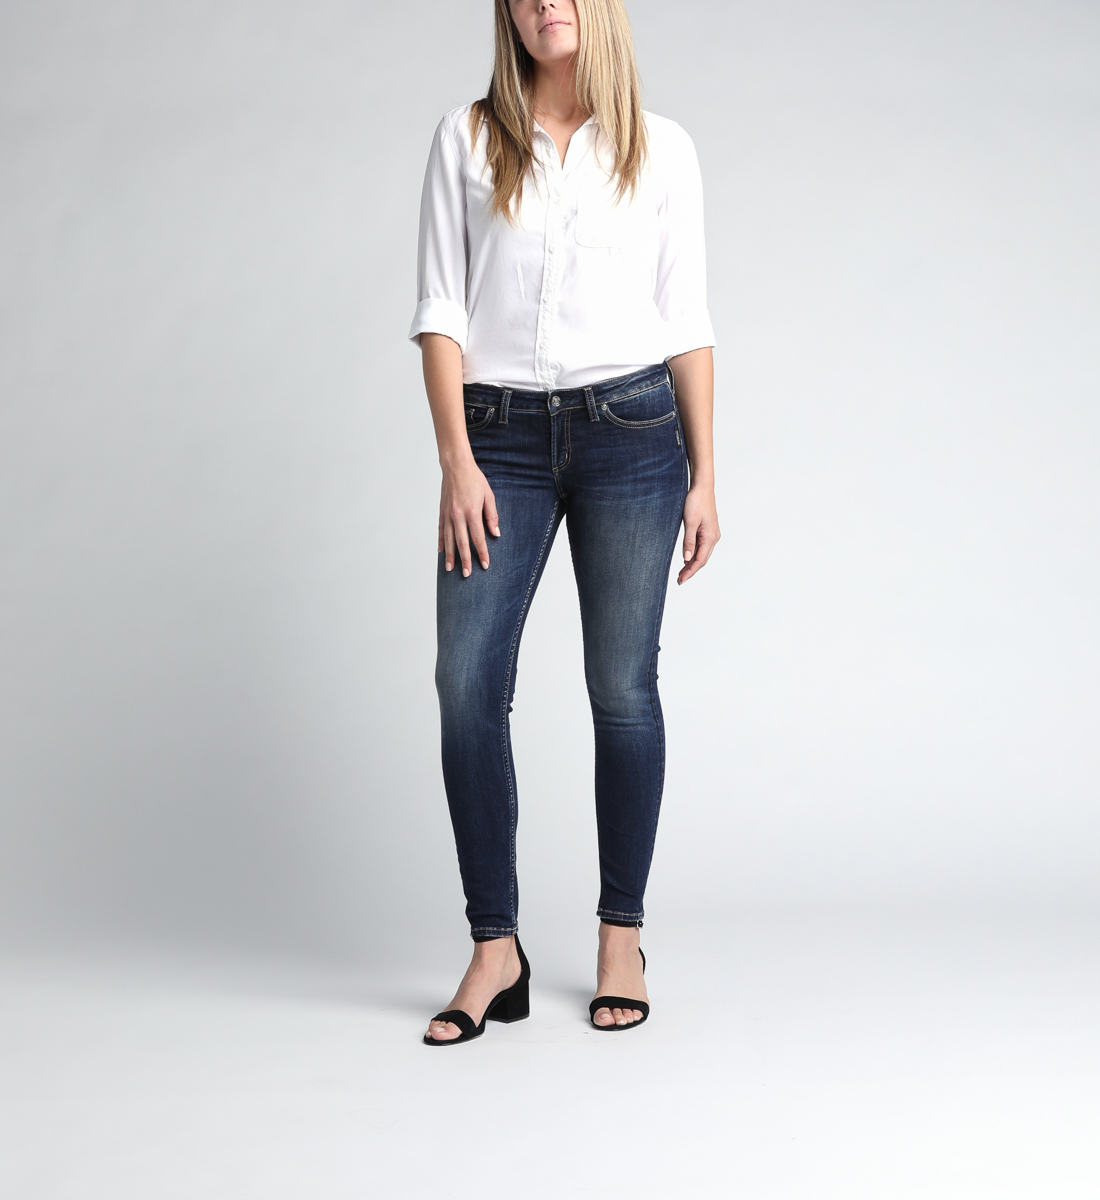 Tuesday Low Rise Skinny Leg Jeans Alt Image 1